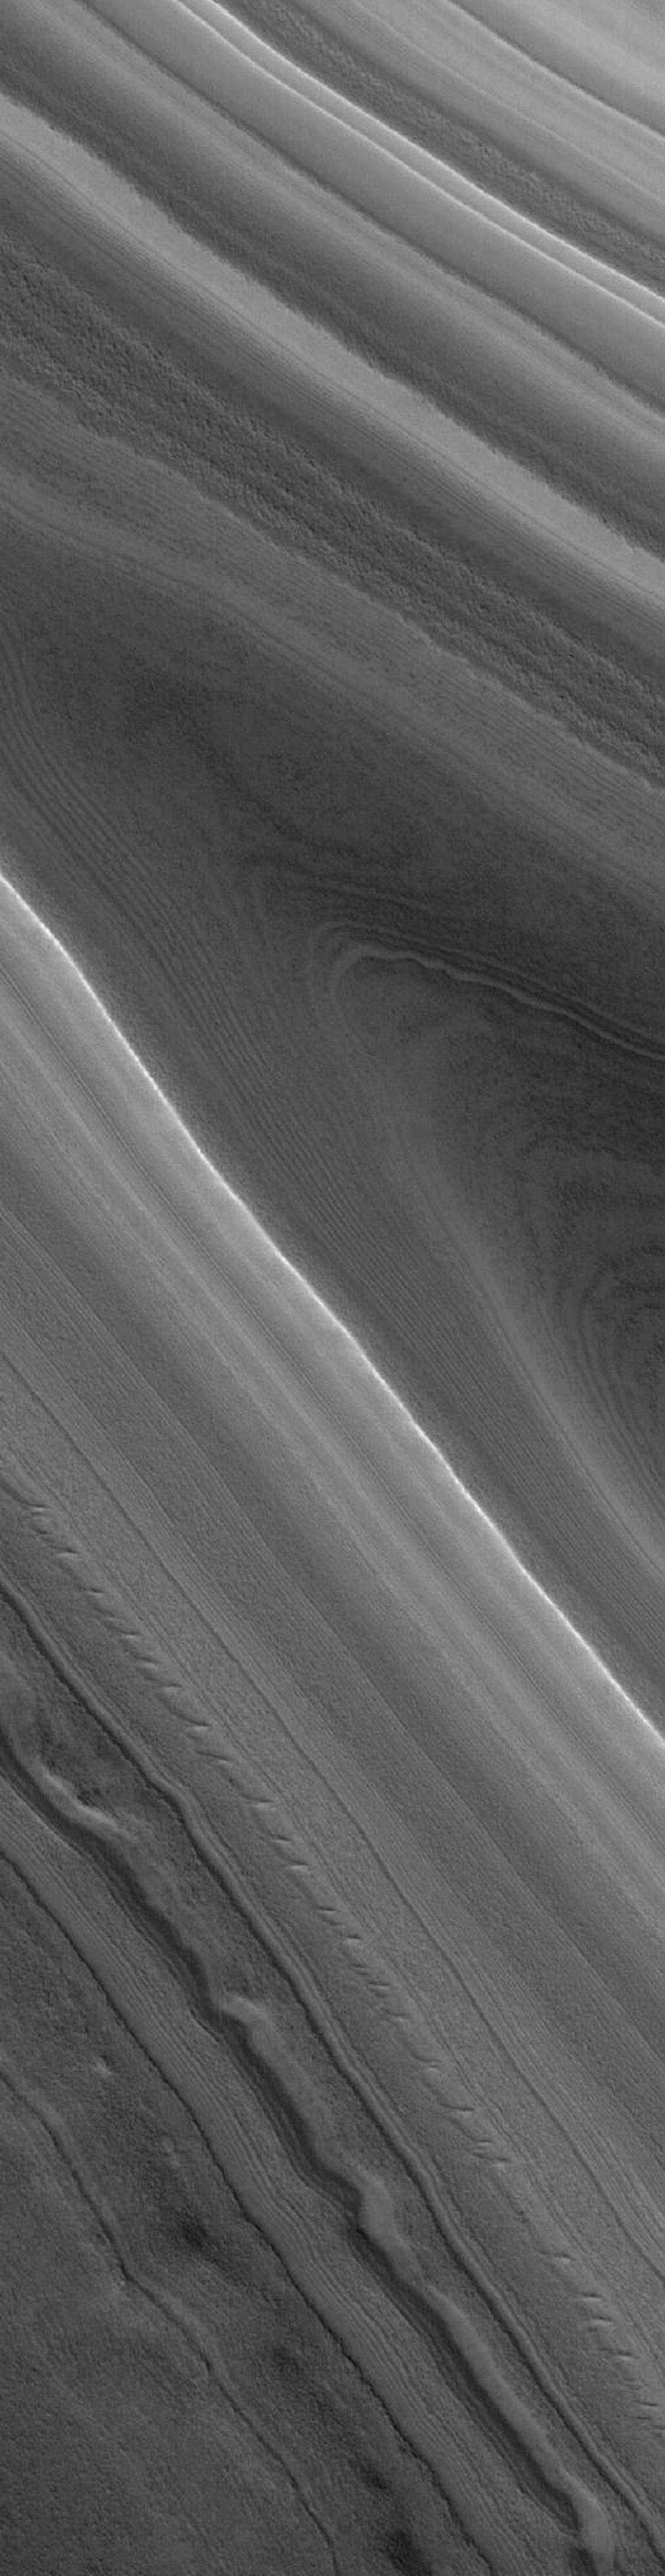 NASA's Mars Global Surveyor shows layered material of the north polar region of Mars.